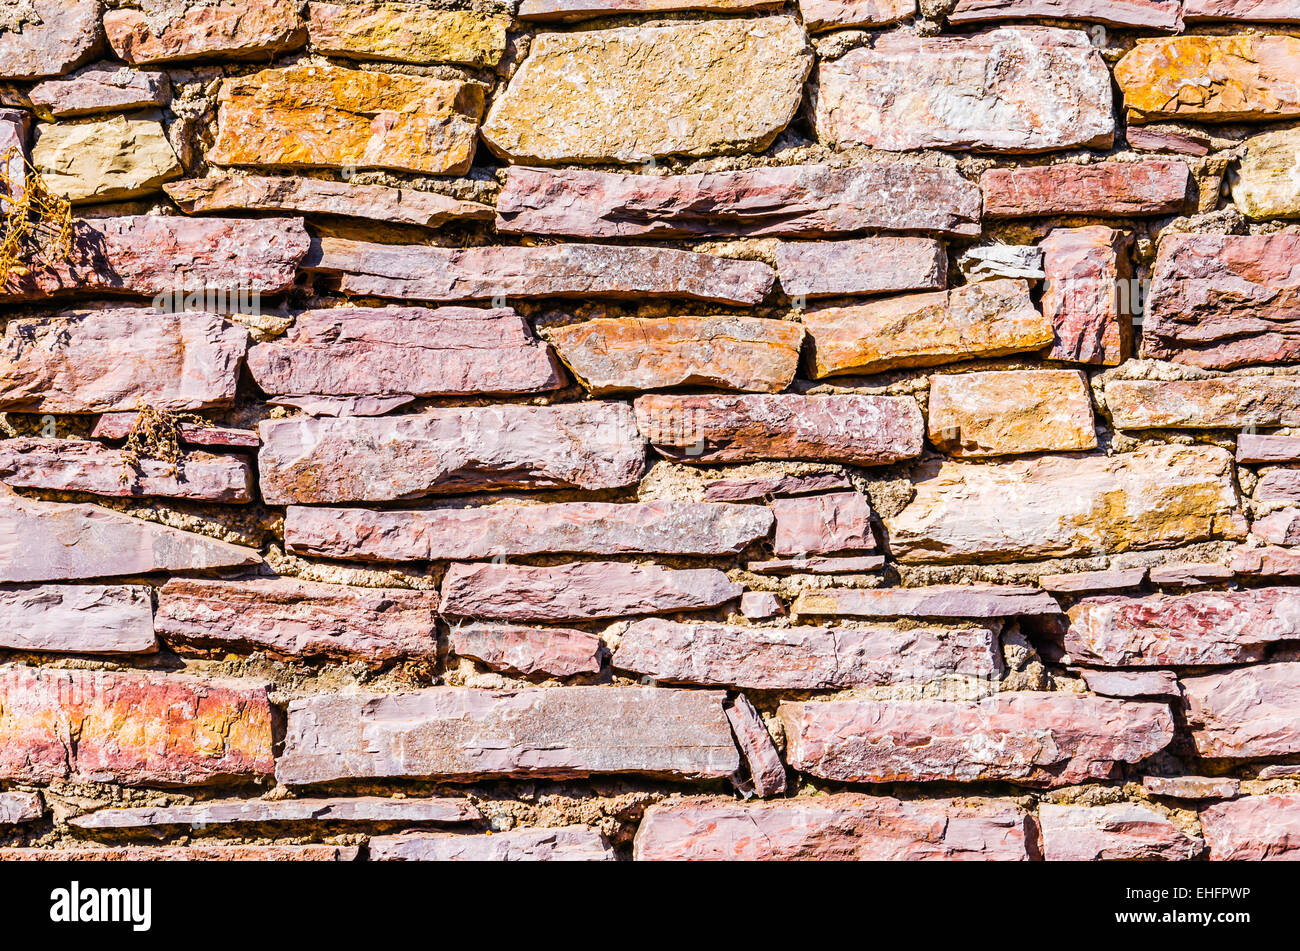 Textured wall - Stock Image